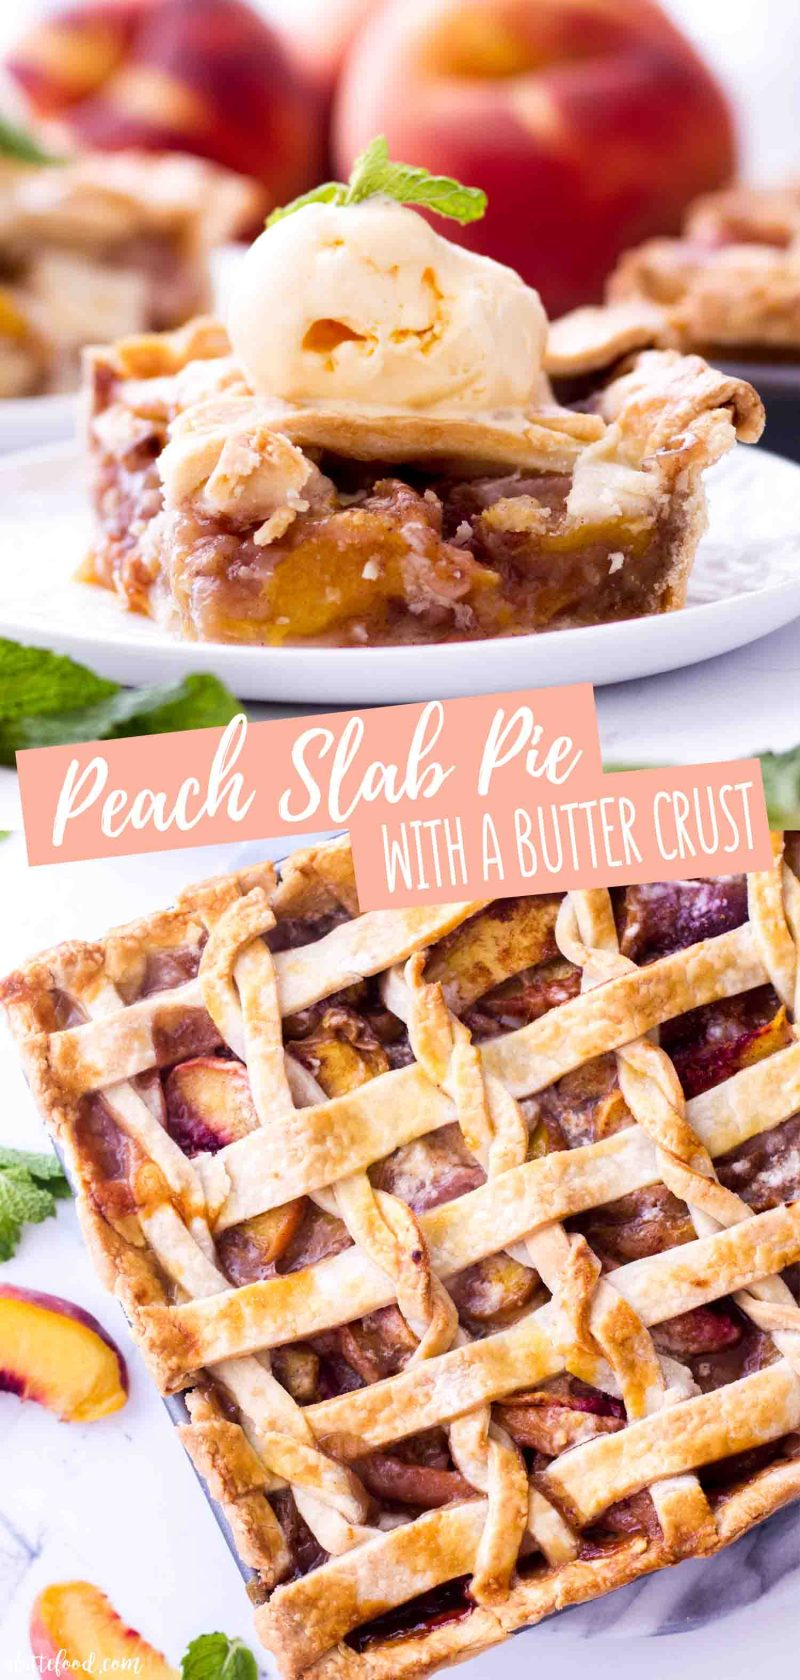 The best easy peach pie recipe is a peach slab pie made with a homemade butter crust.